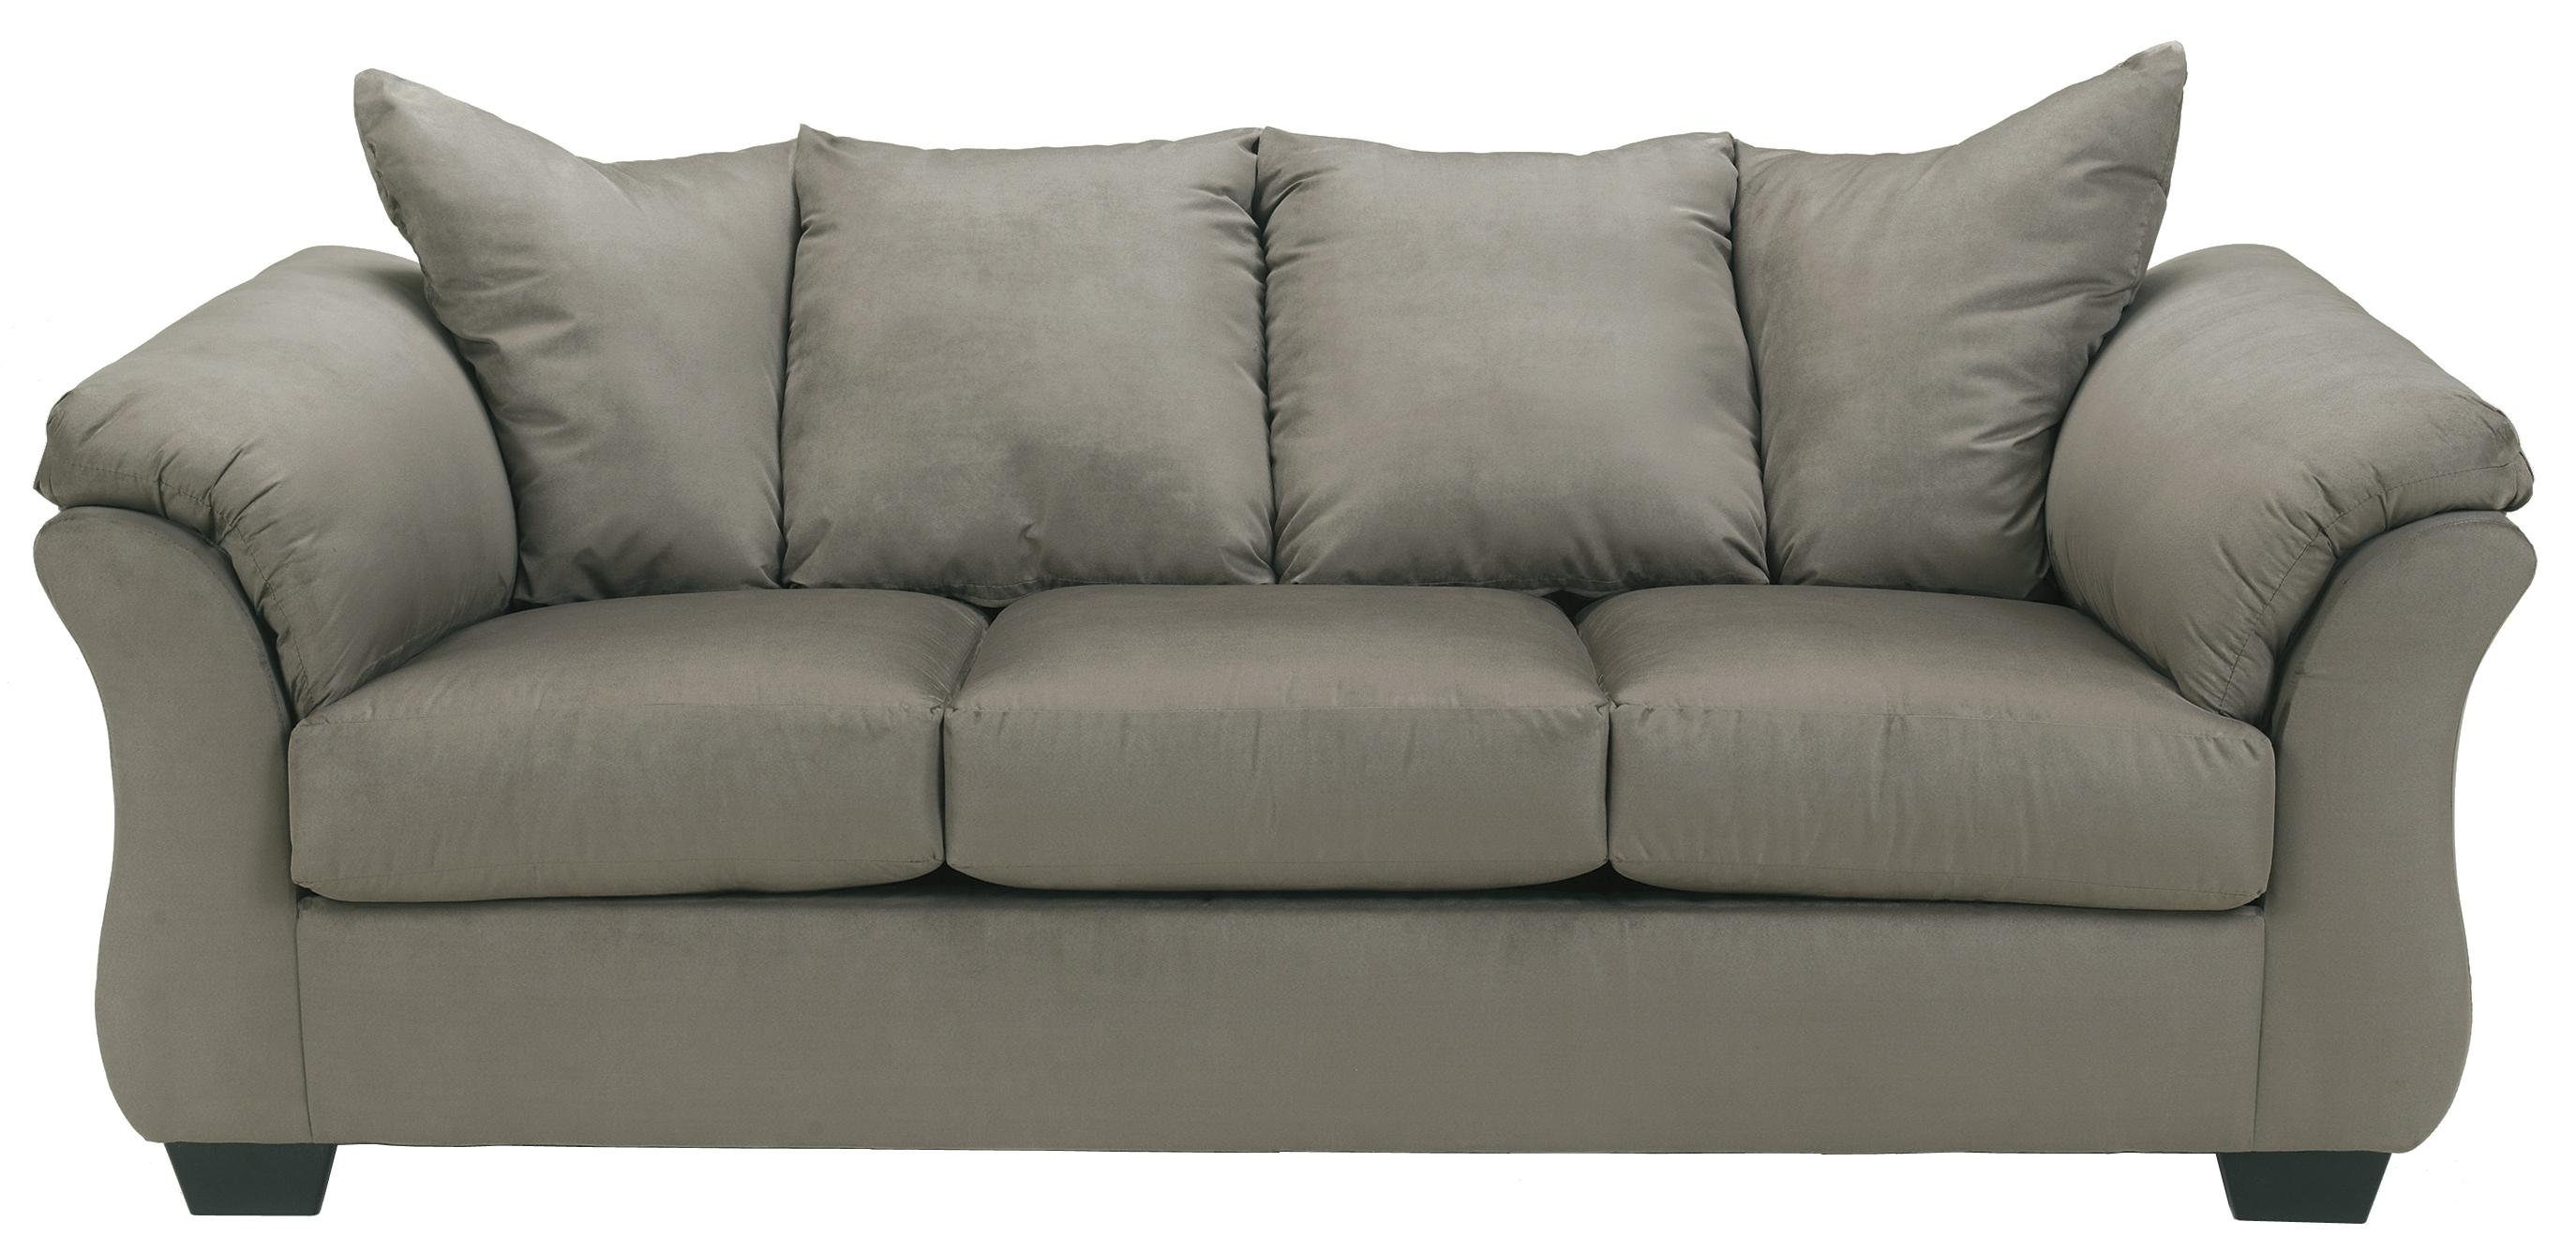 Darcy - Cobblestone Stationary Sofa by Signature Design by Ashley at Northeast Factory Direct